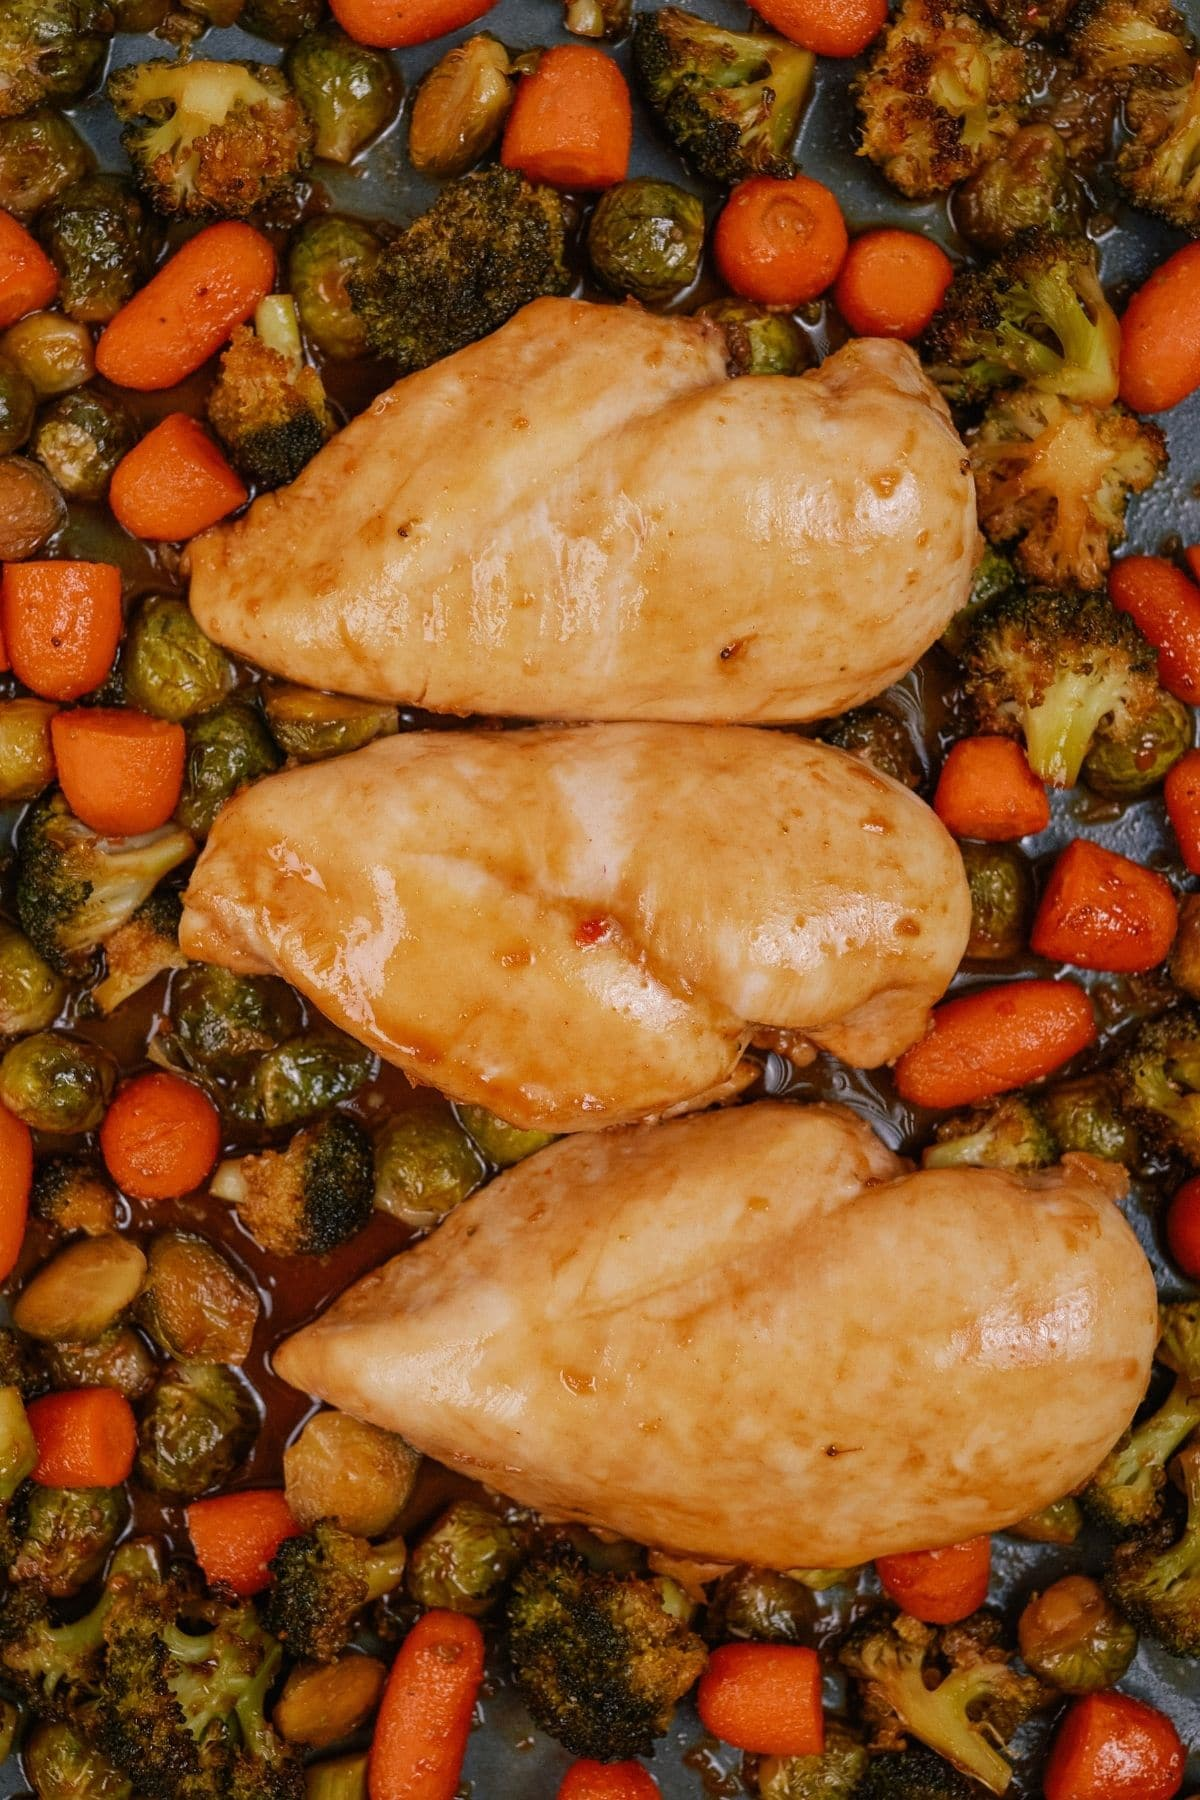 Image looking down at platter of chicken and carrots with broccoli